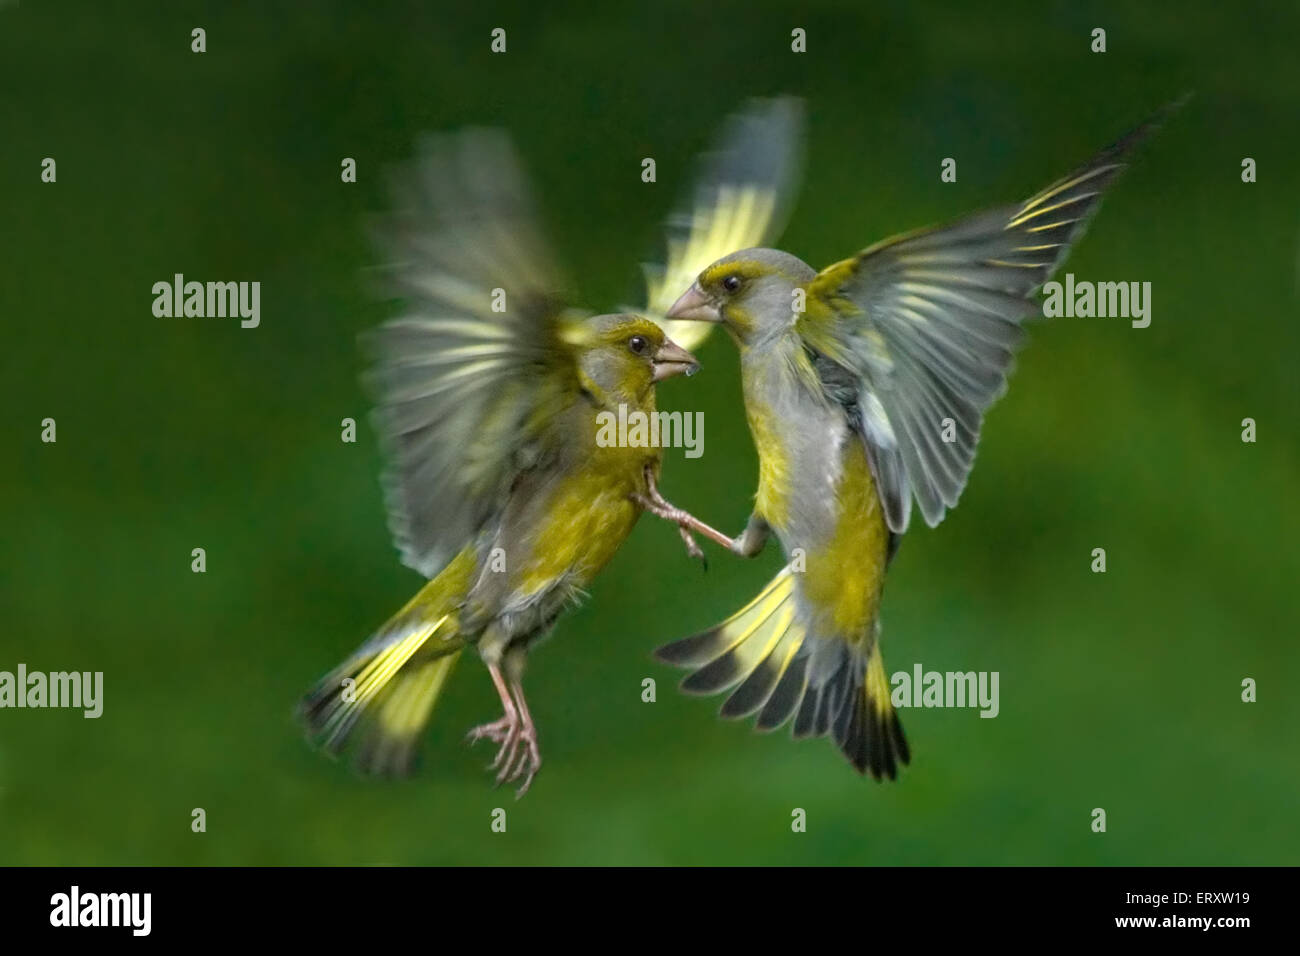 Passerine battle. Greenfinches (Carduelis chloris) fighting in flight - Stock Image